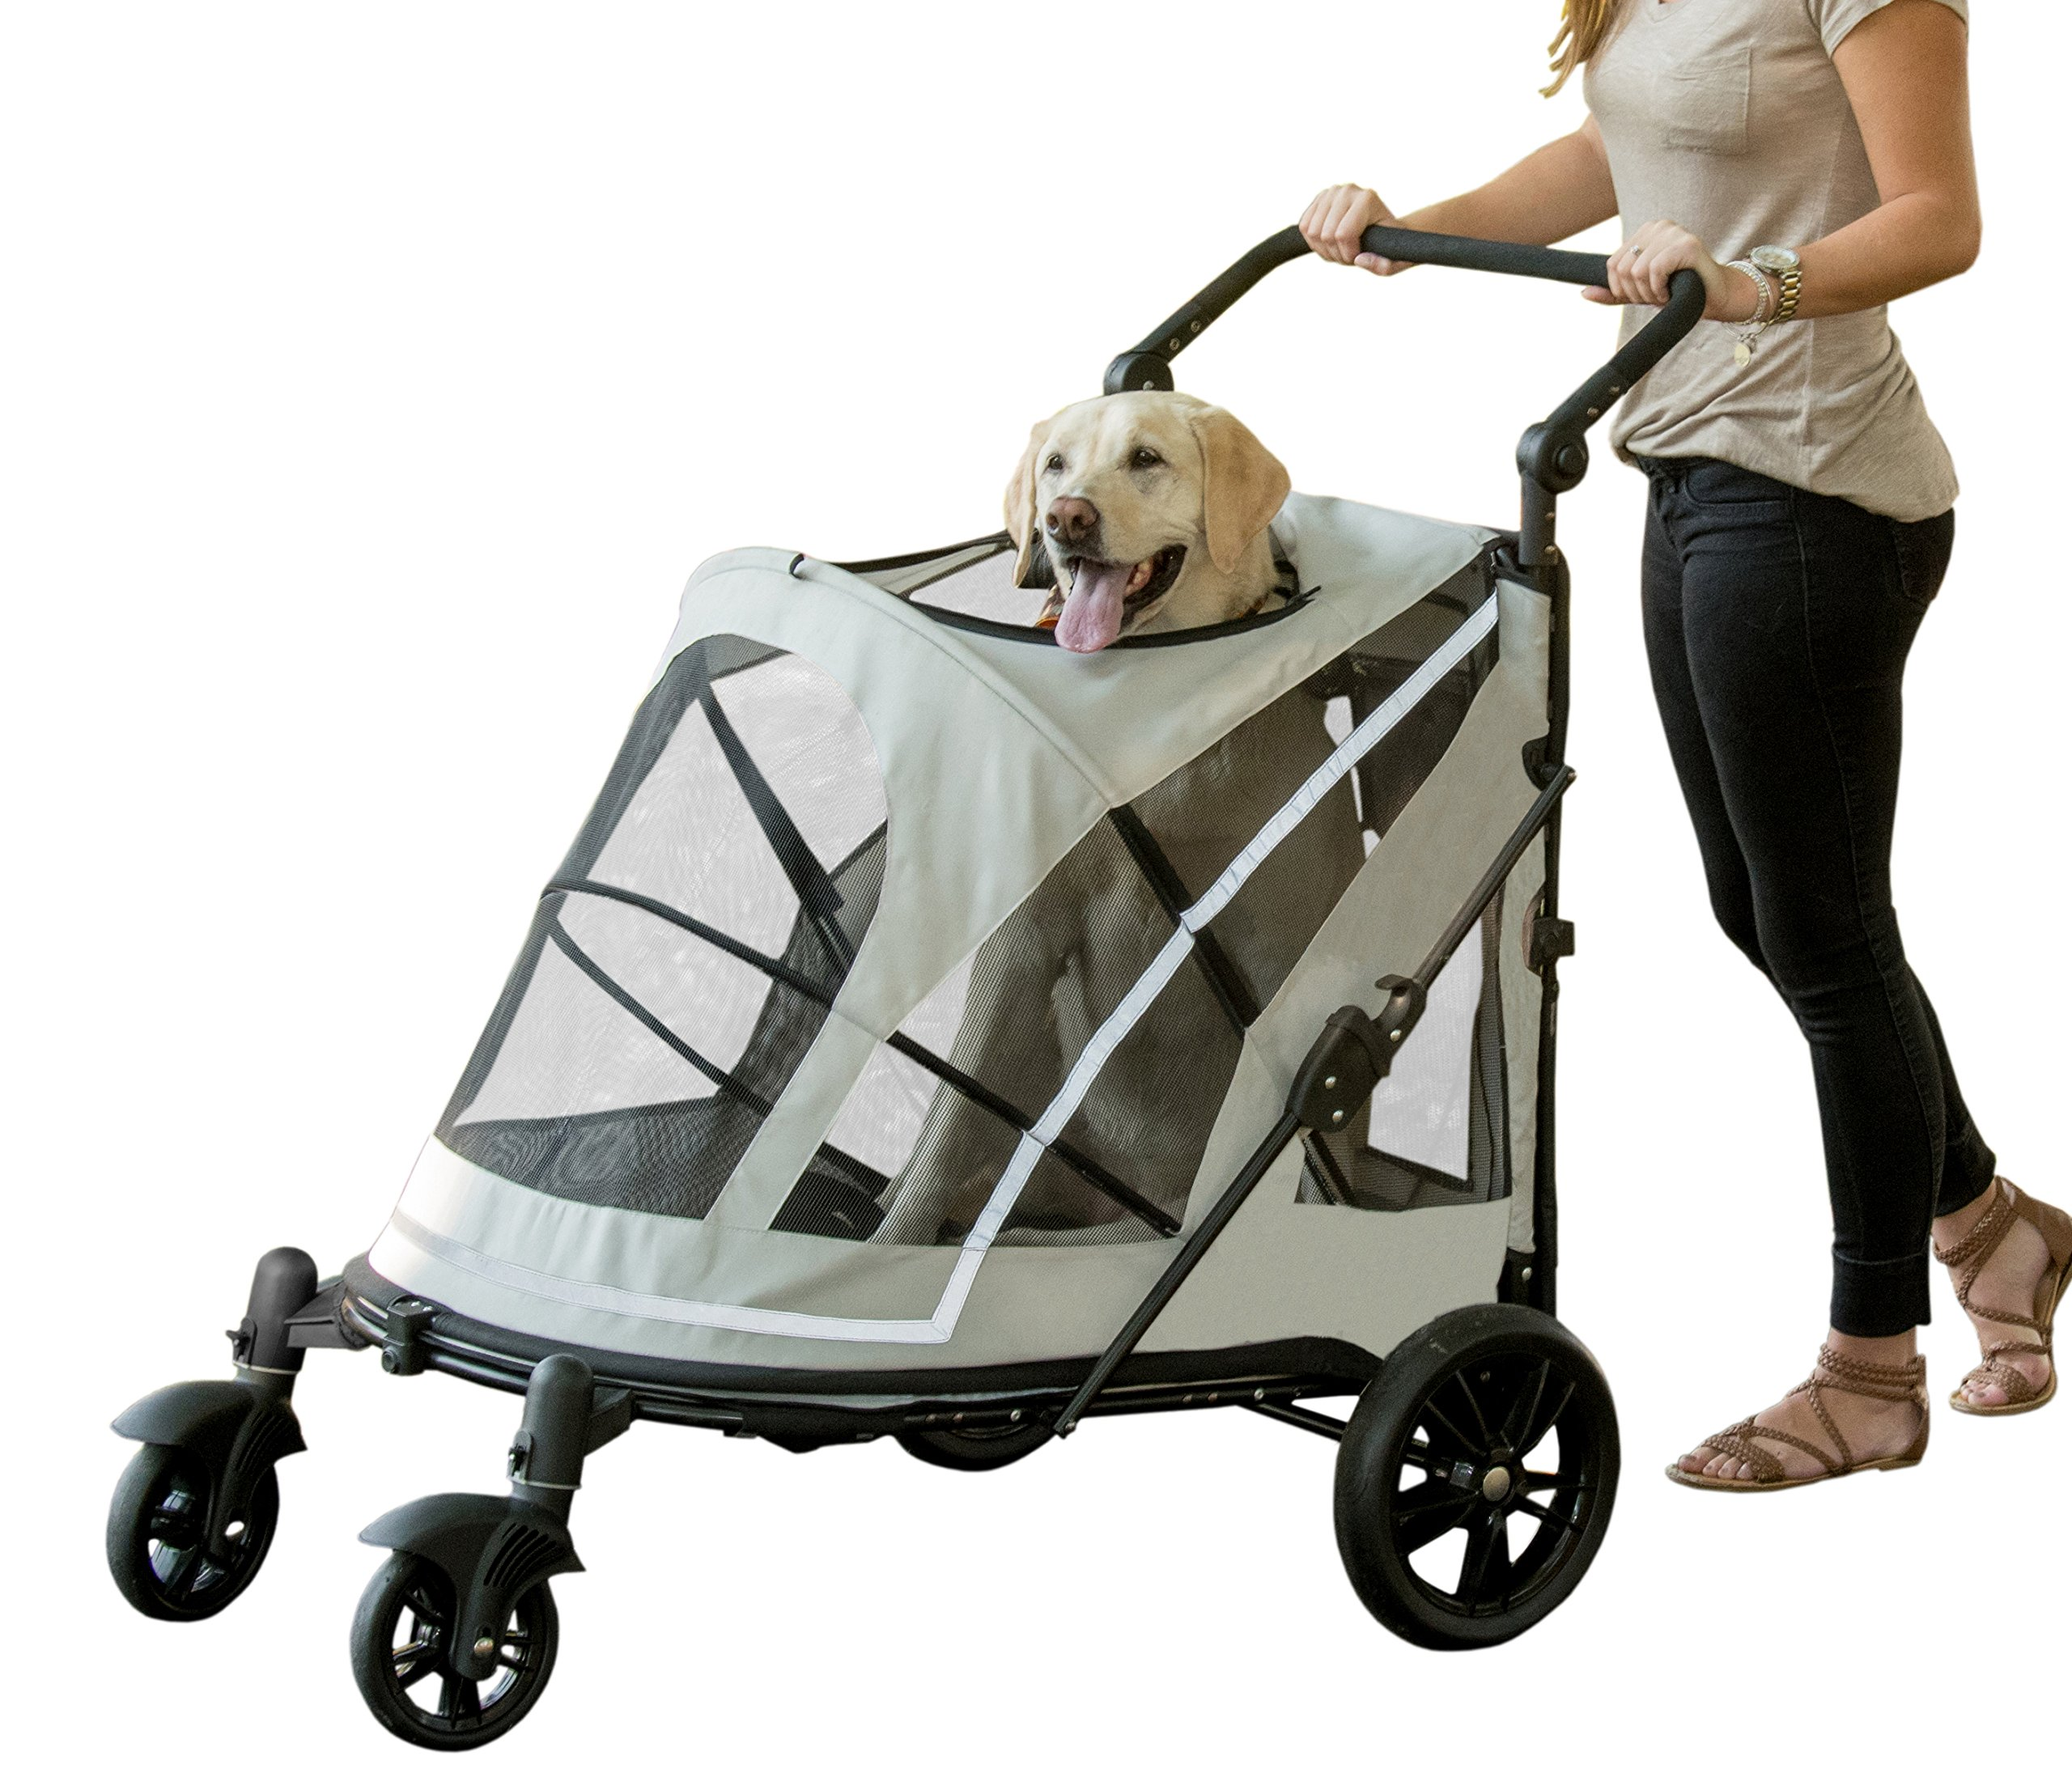 Pet Gear No-Zip Expedition, with push Button Entry for Single or Multiple Pets, Fog